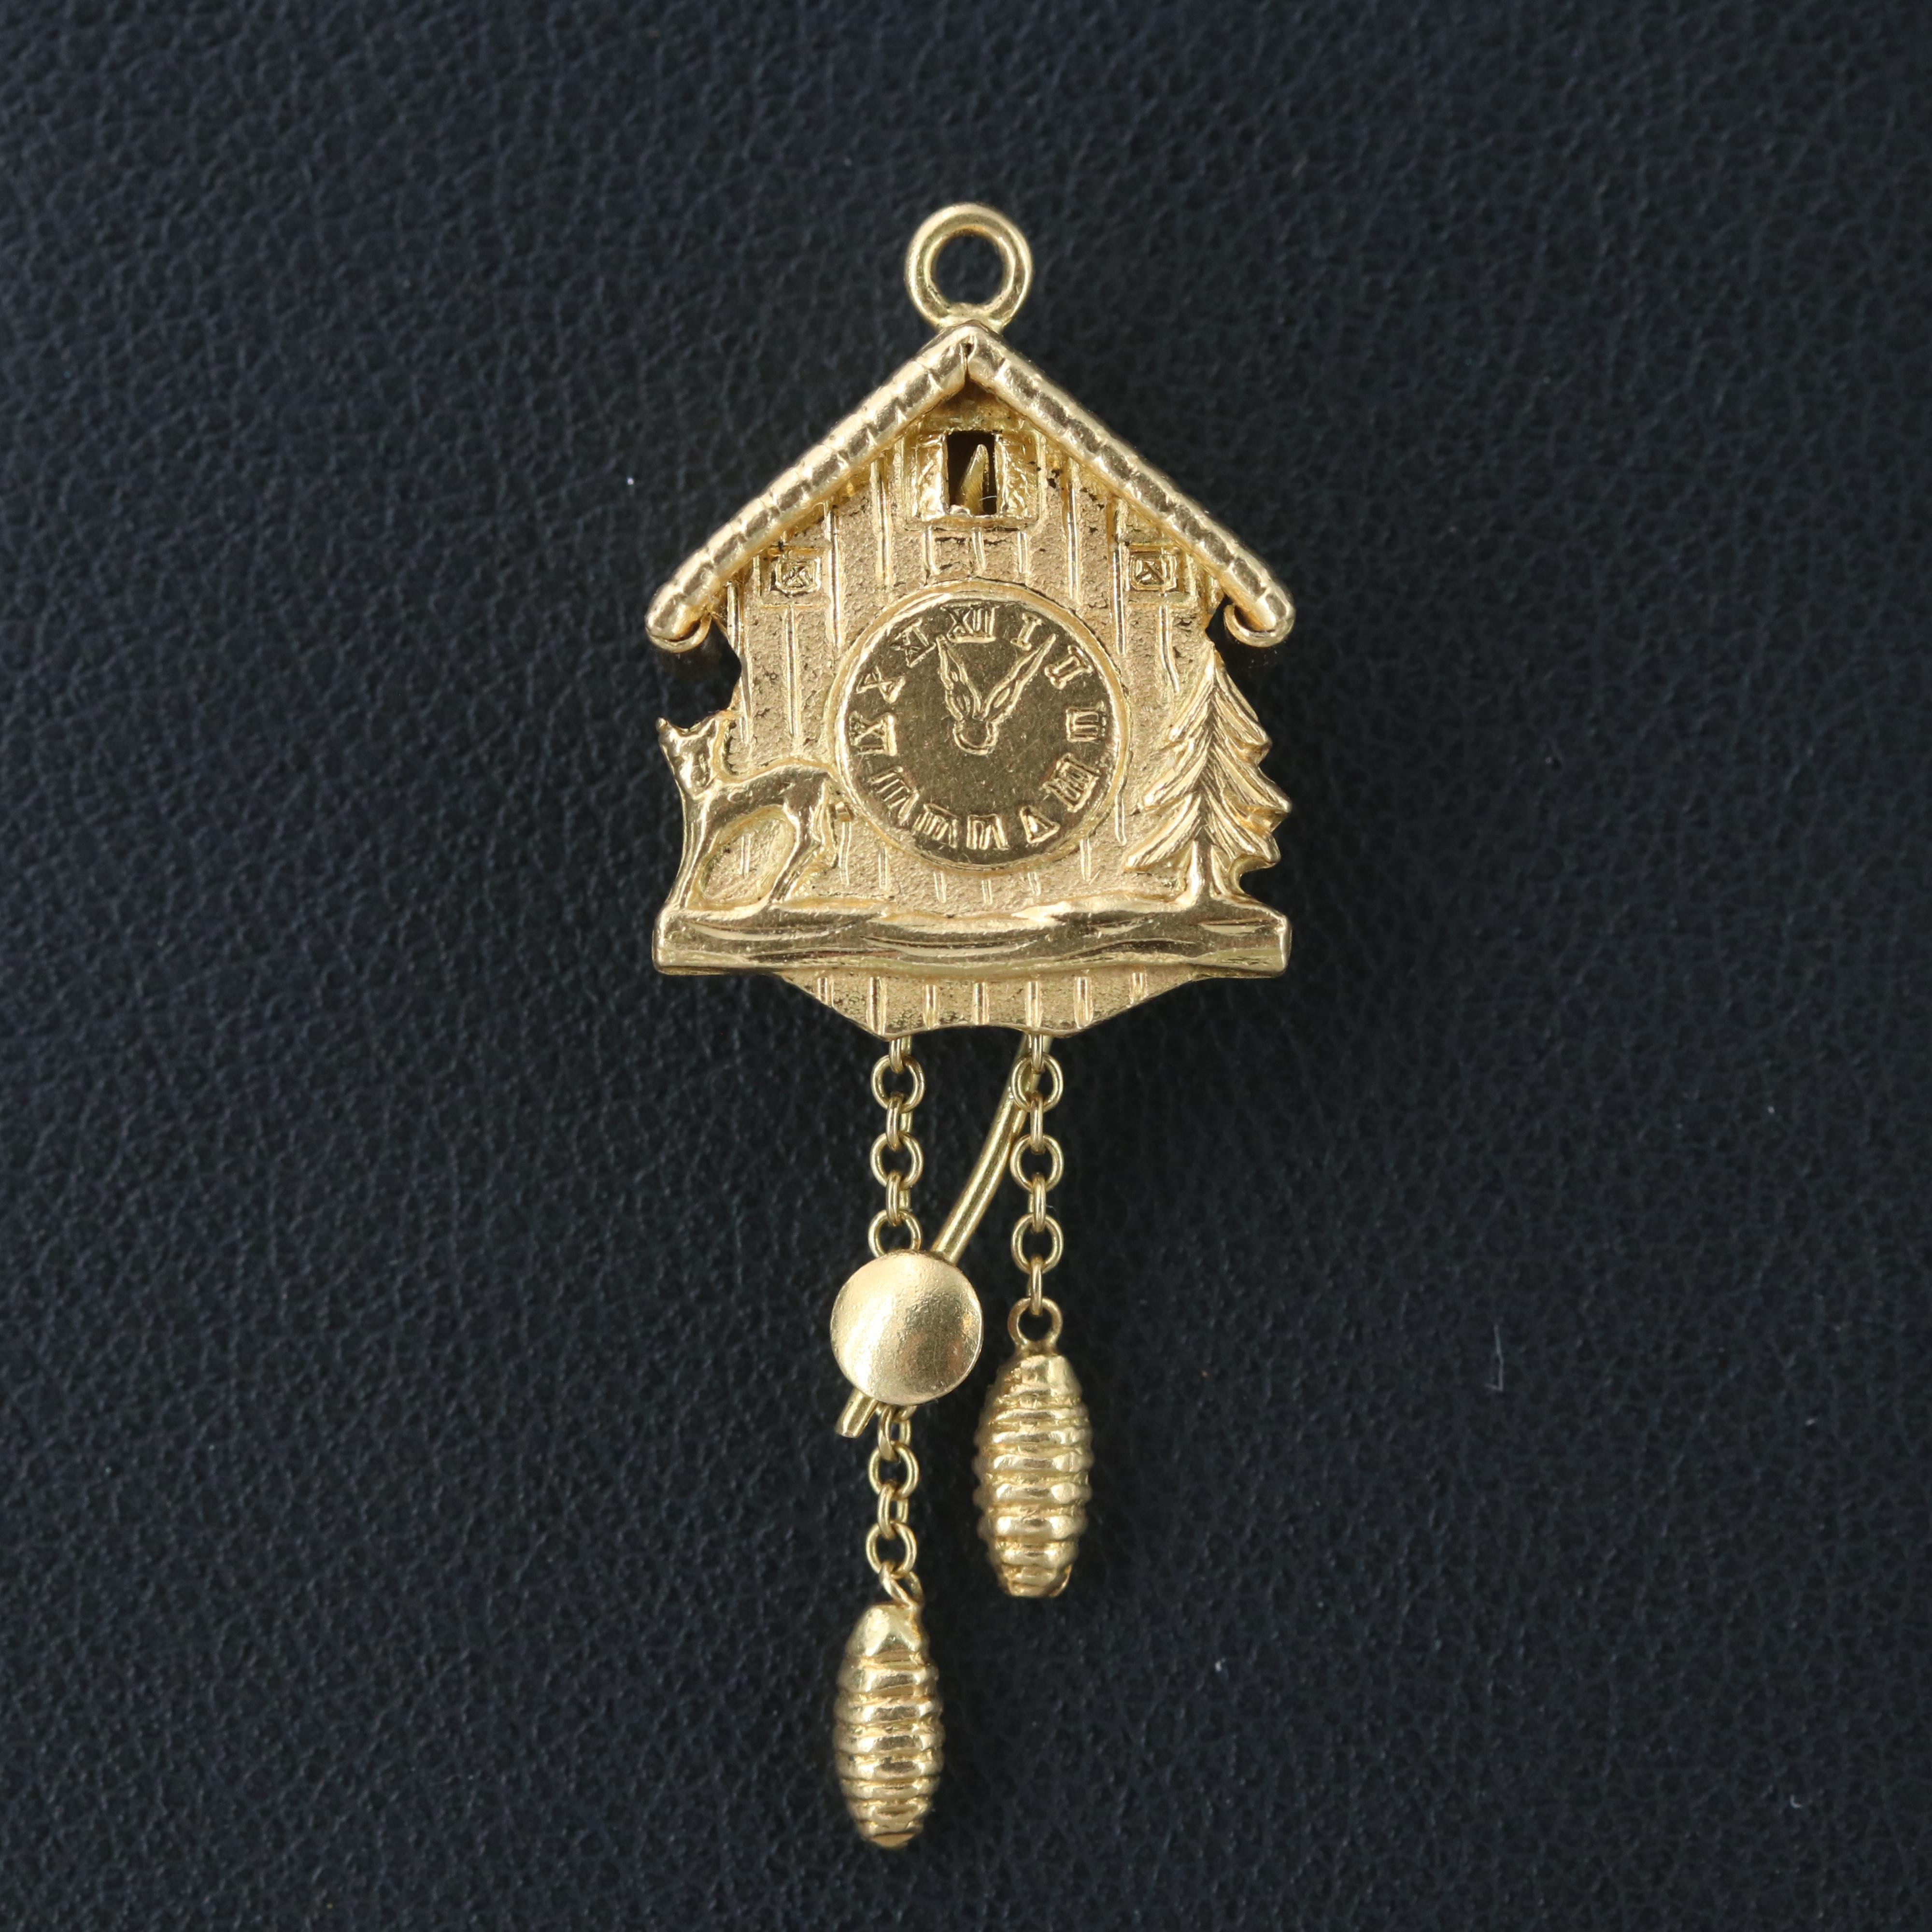 Vintage 18K Yellow Gold Cuckoo Clock Charm